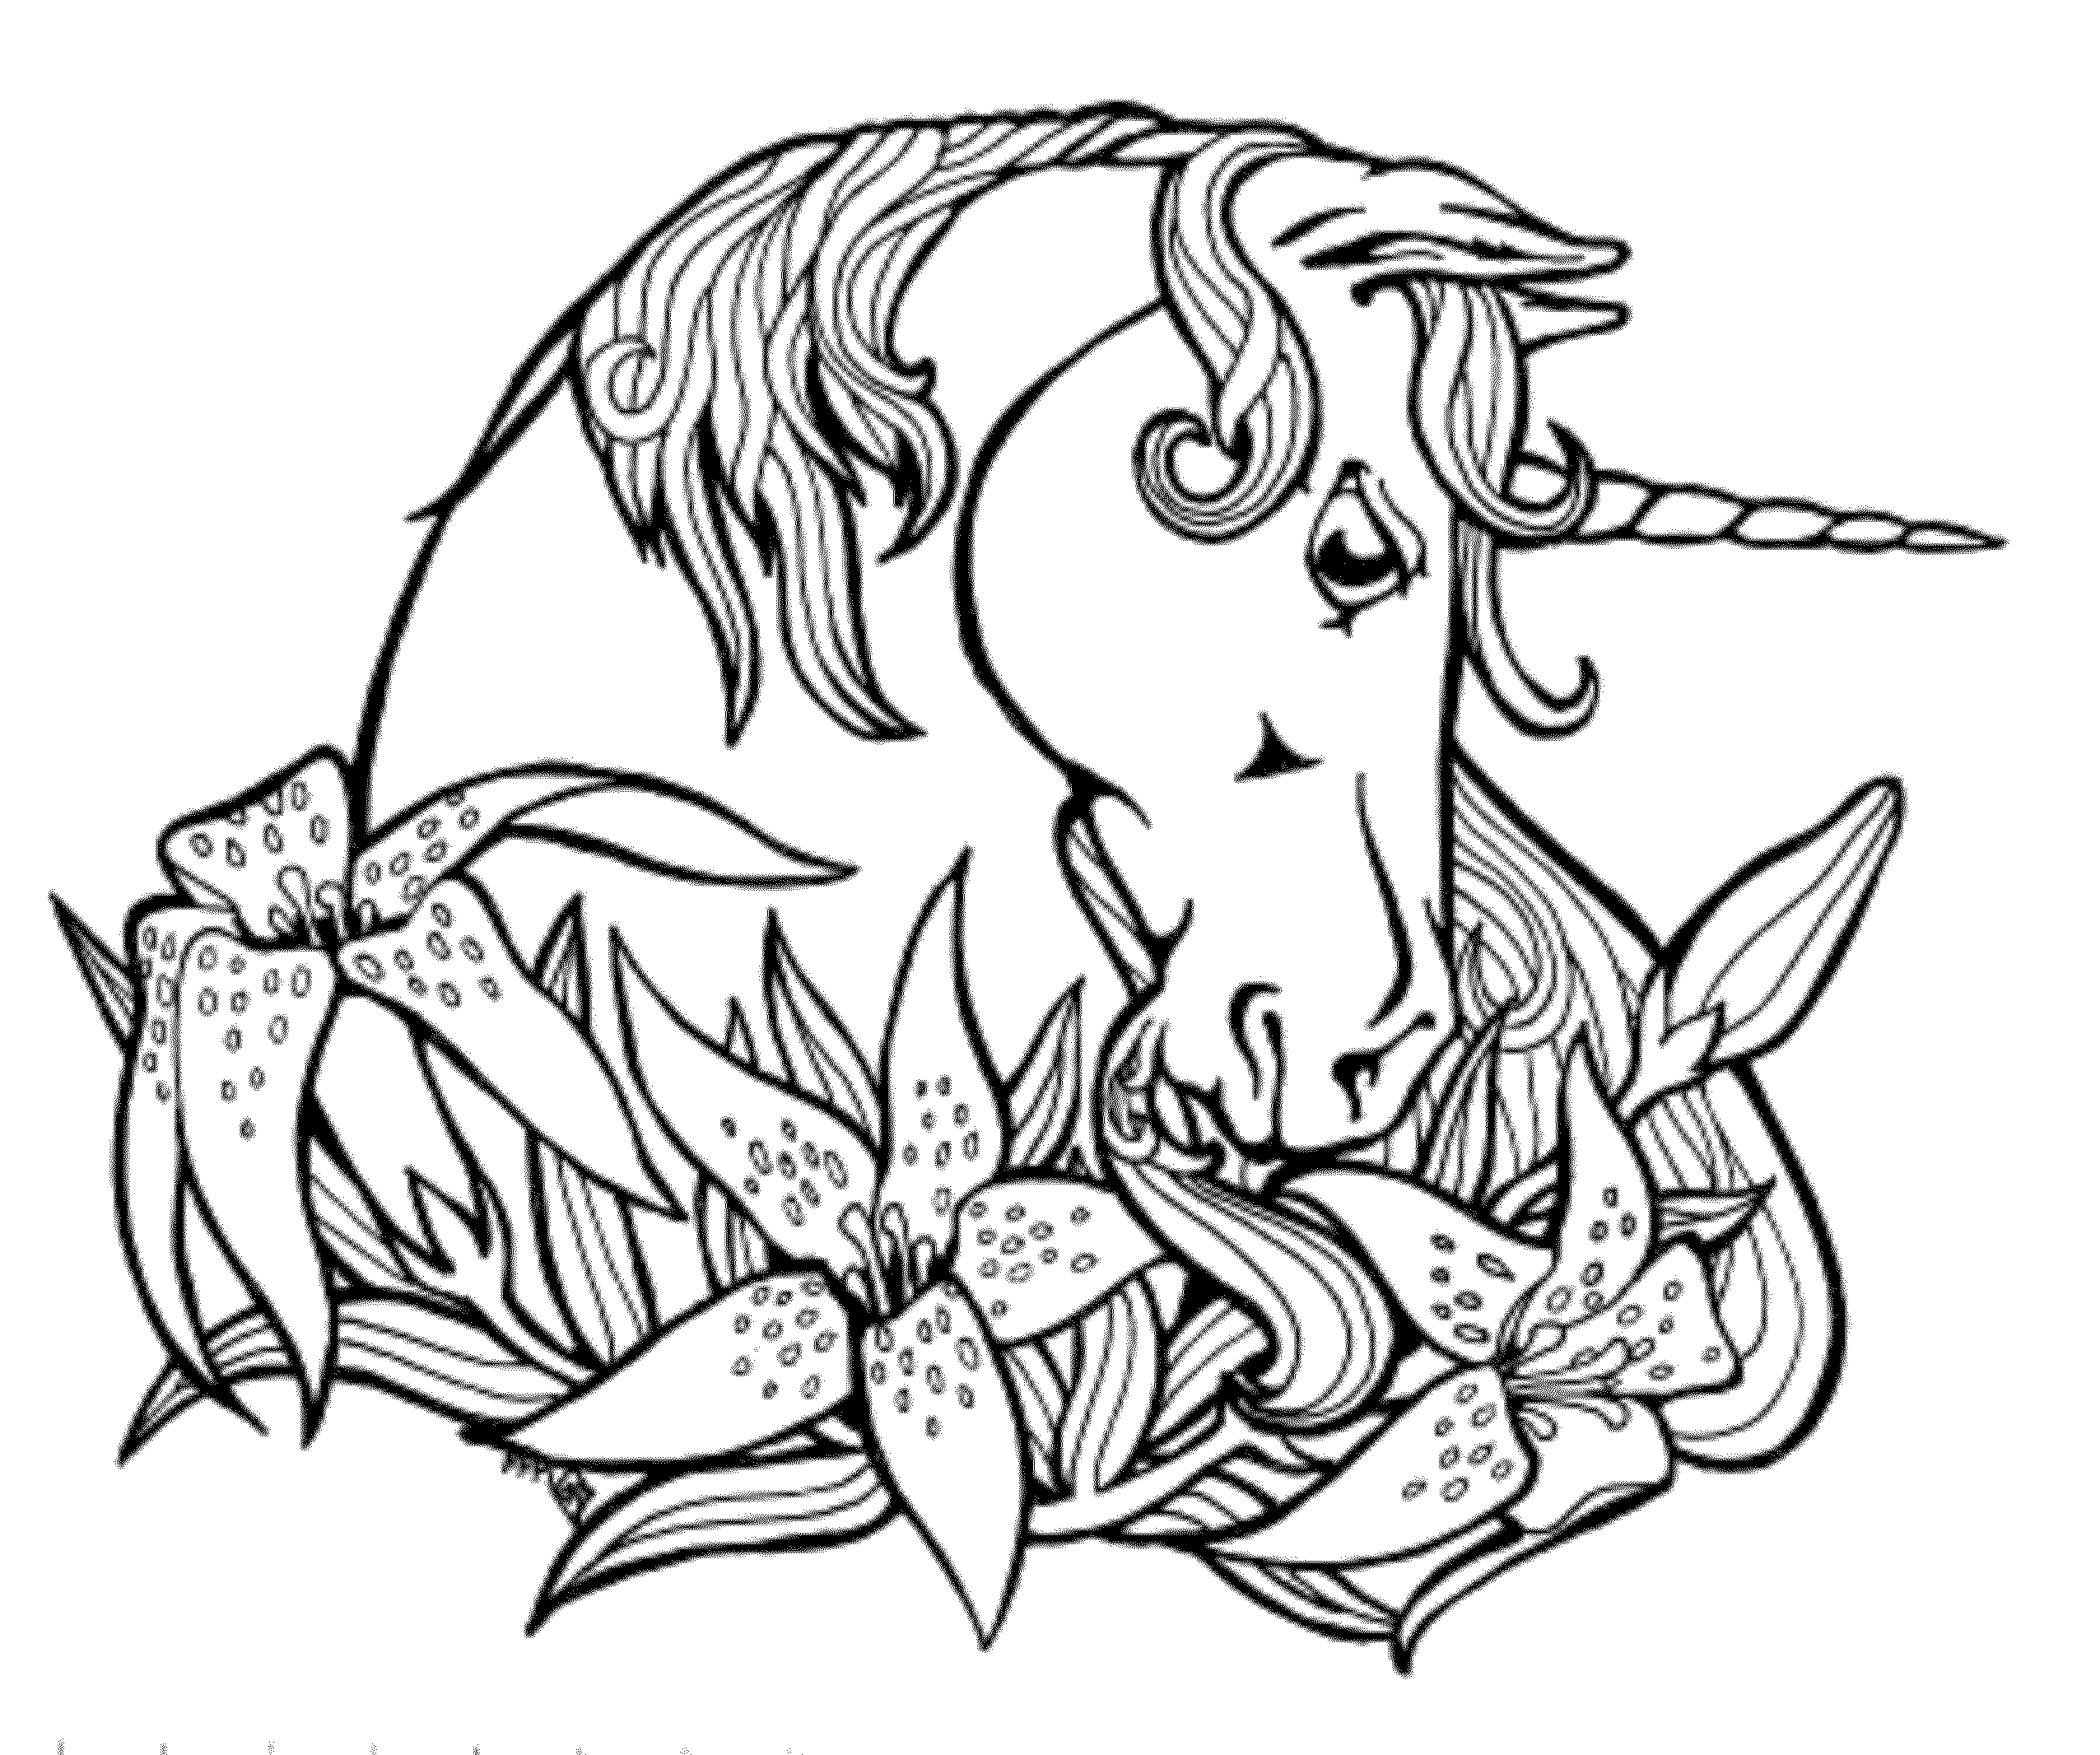 free printable coloring pages of unicorns print download unicorn coloring pages for children of pages coloring printable free unicorns